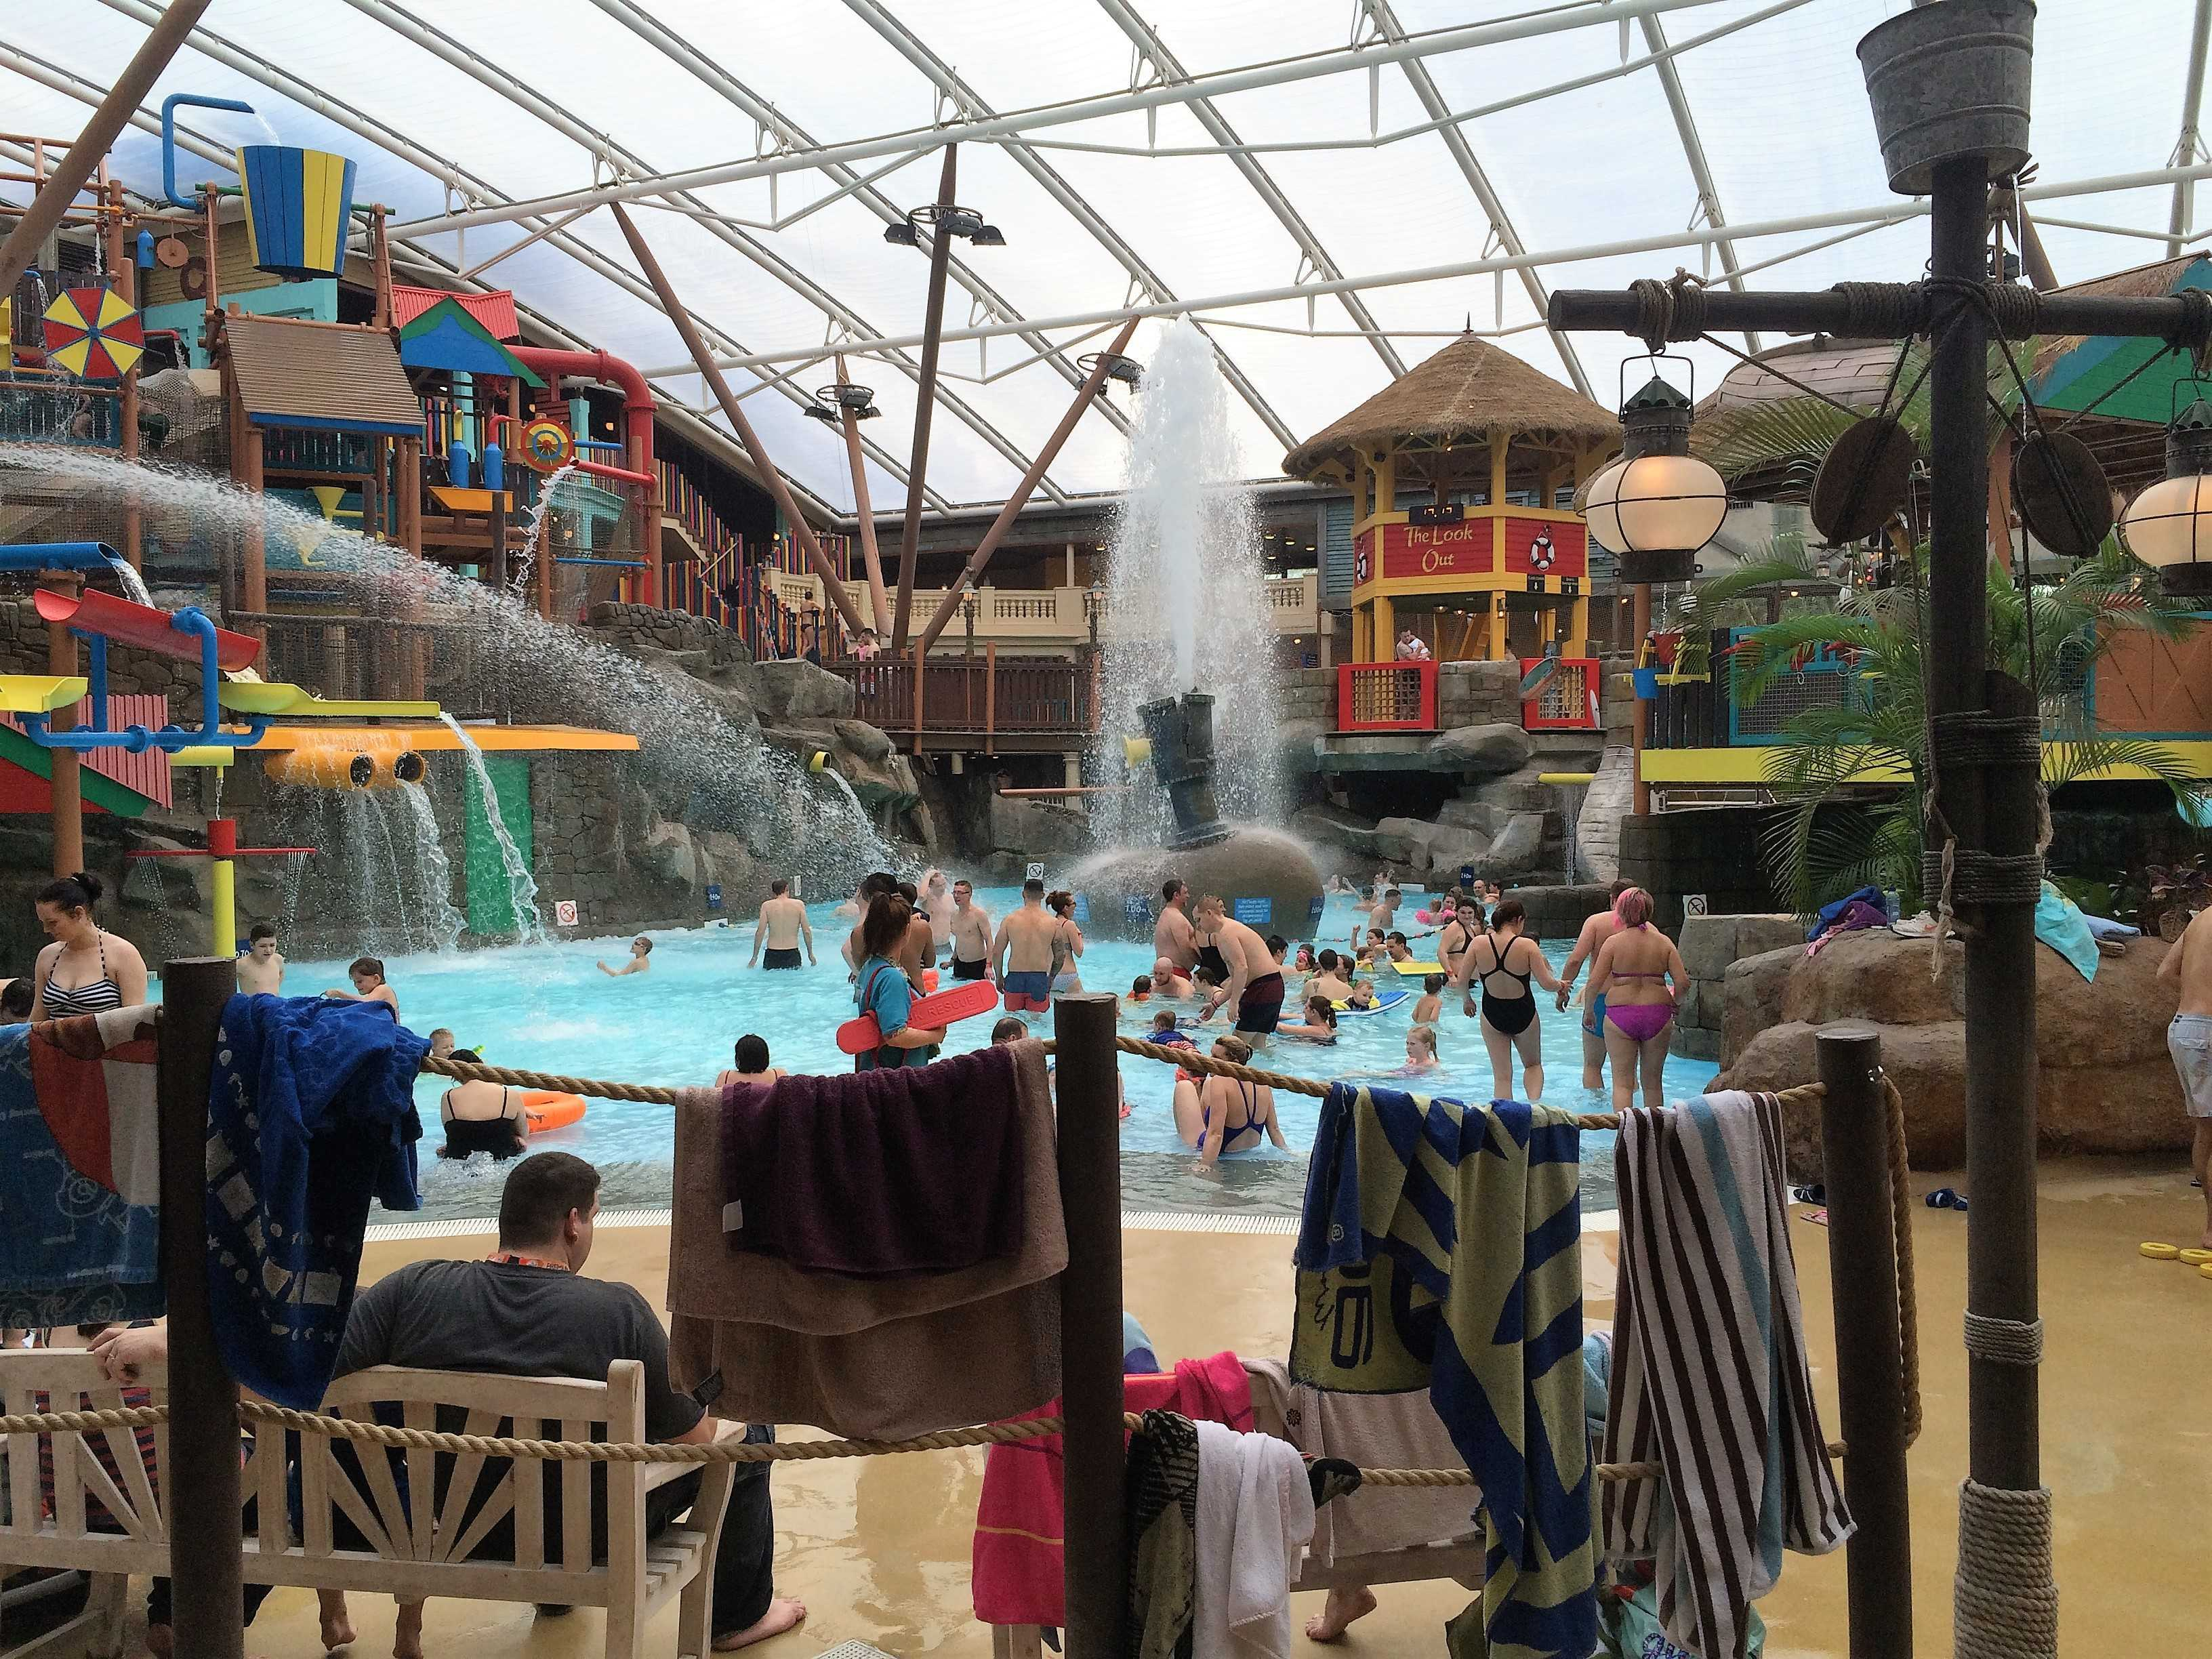 Sunday at Splash Landings Waterpark Alton Towers